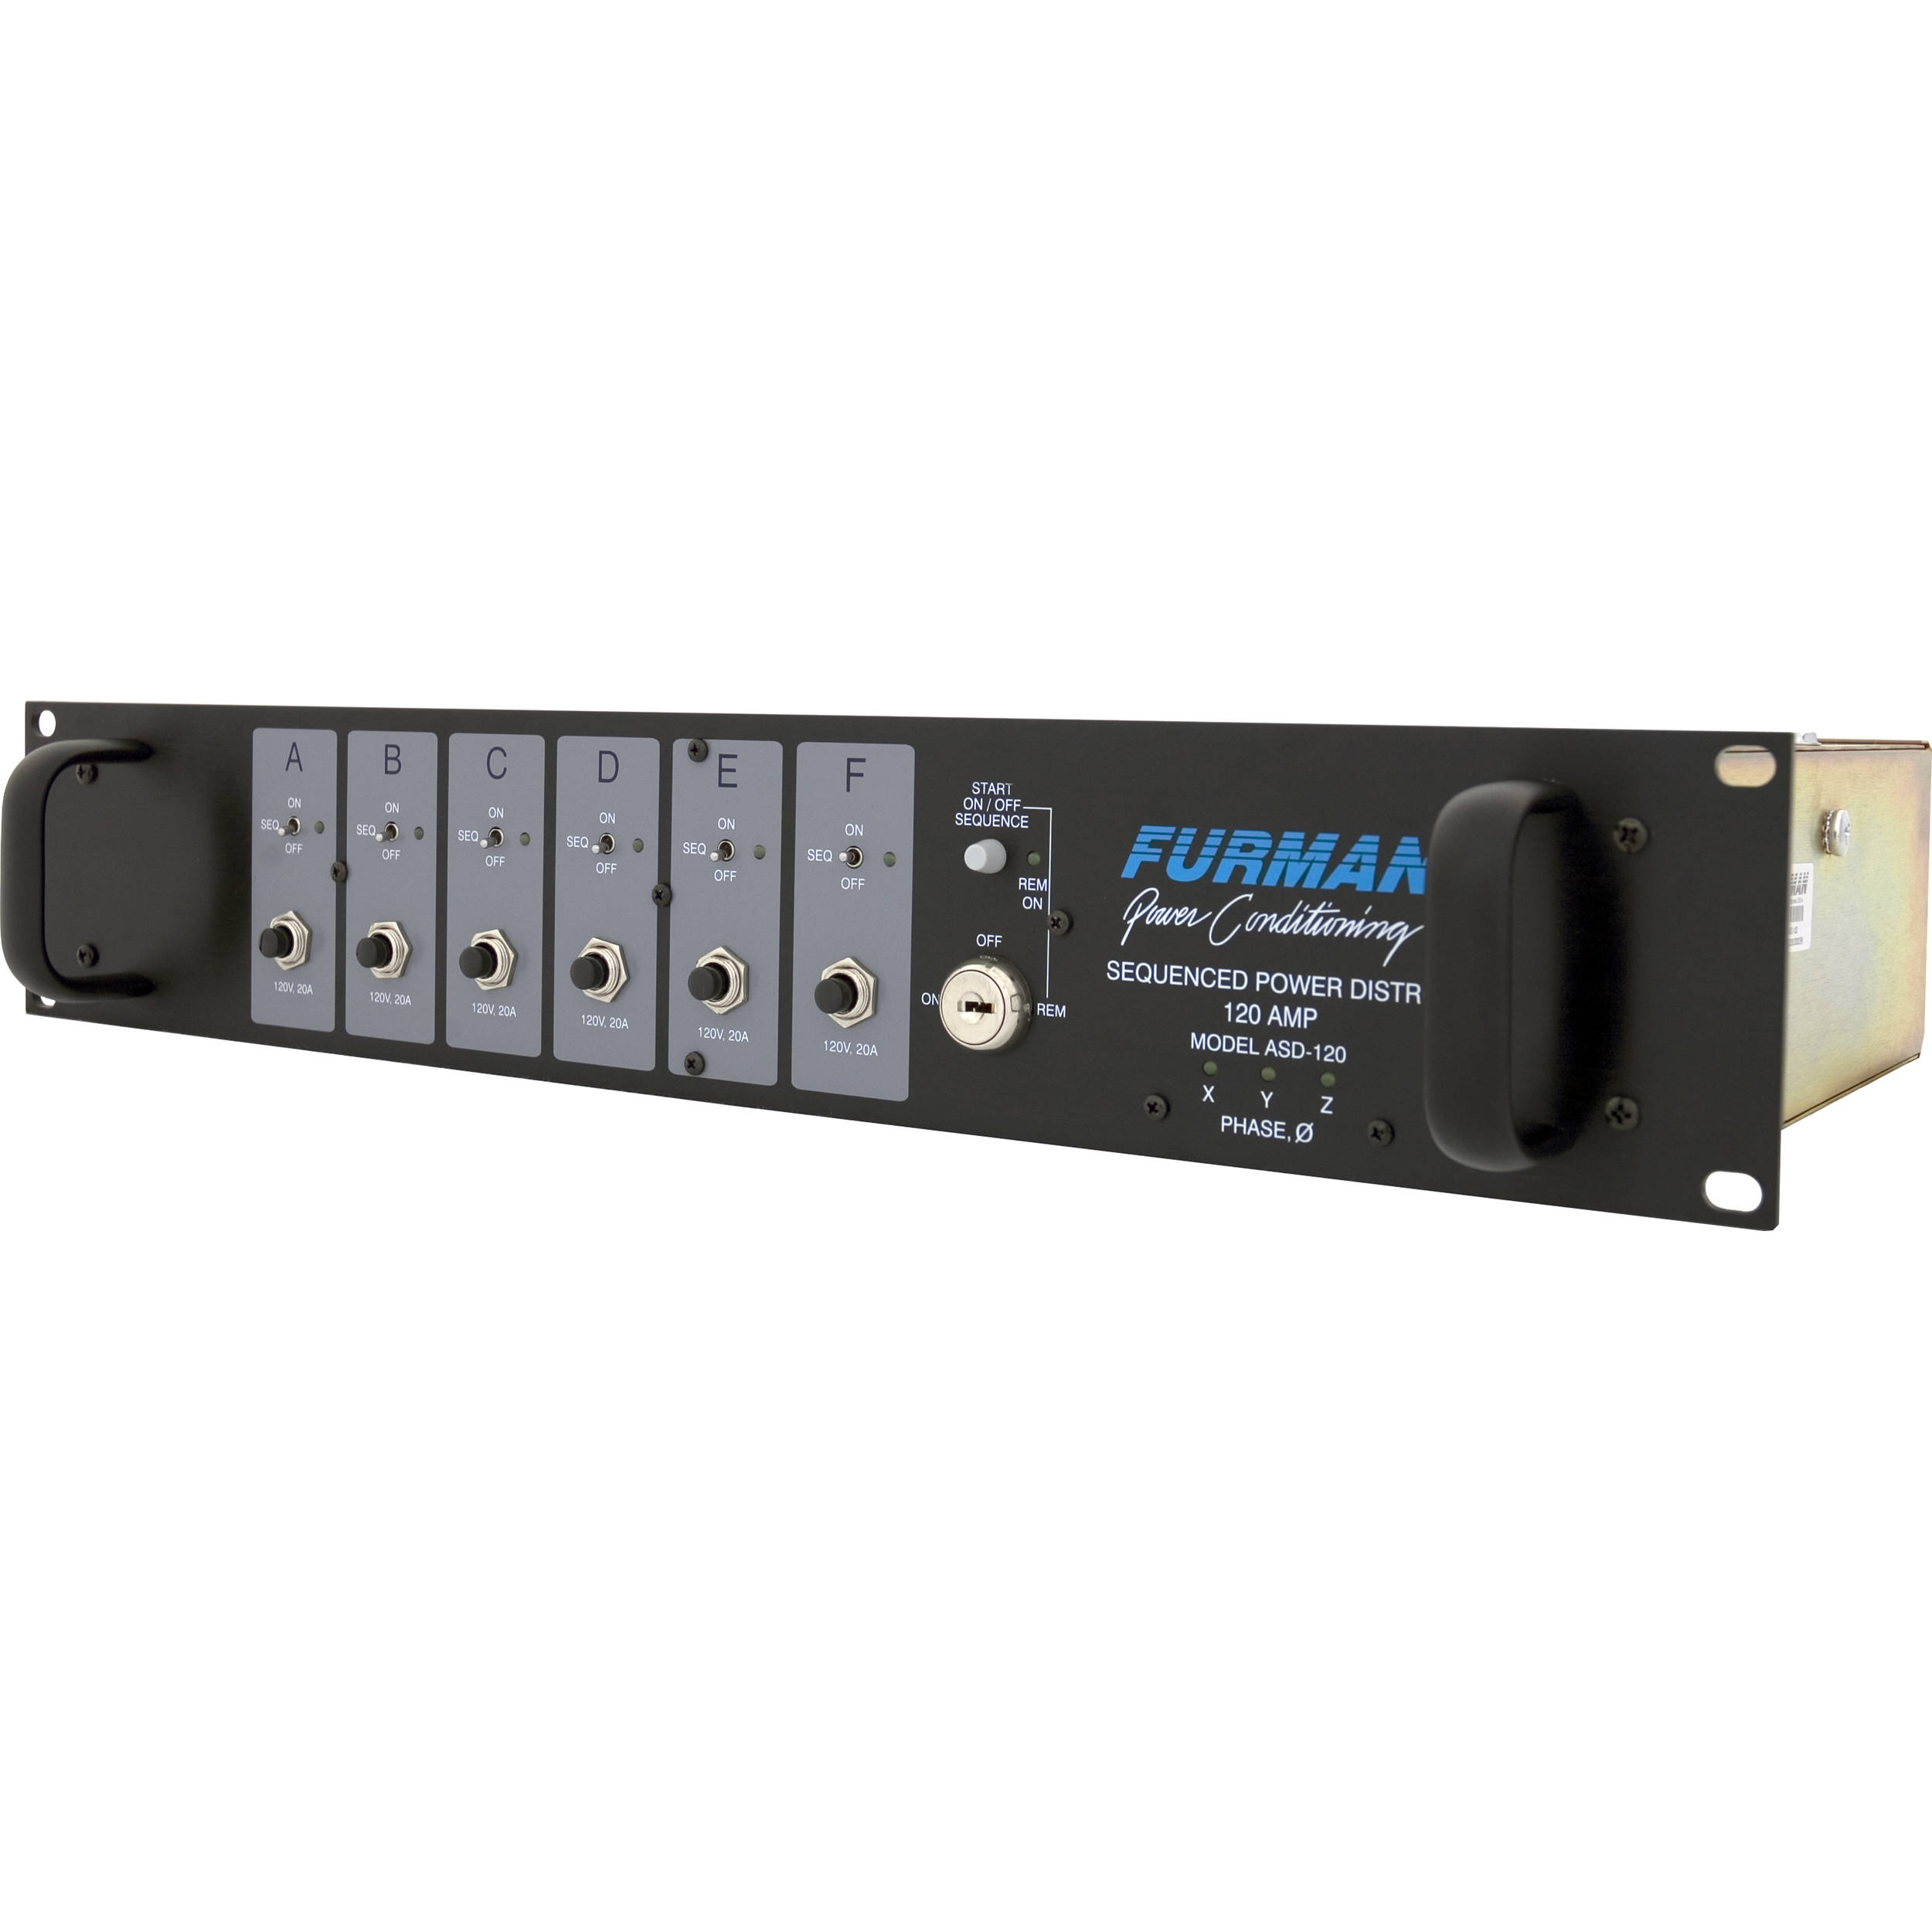 Furman 6-Channel Power Distrib